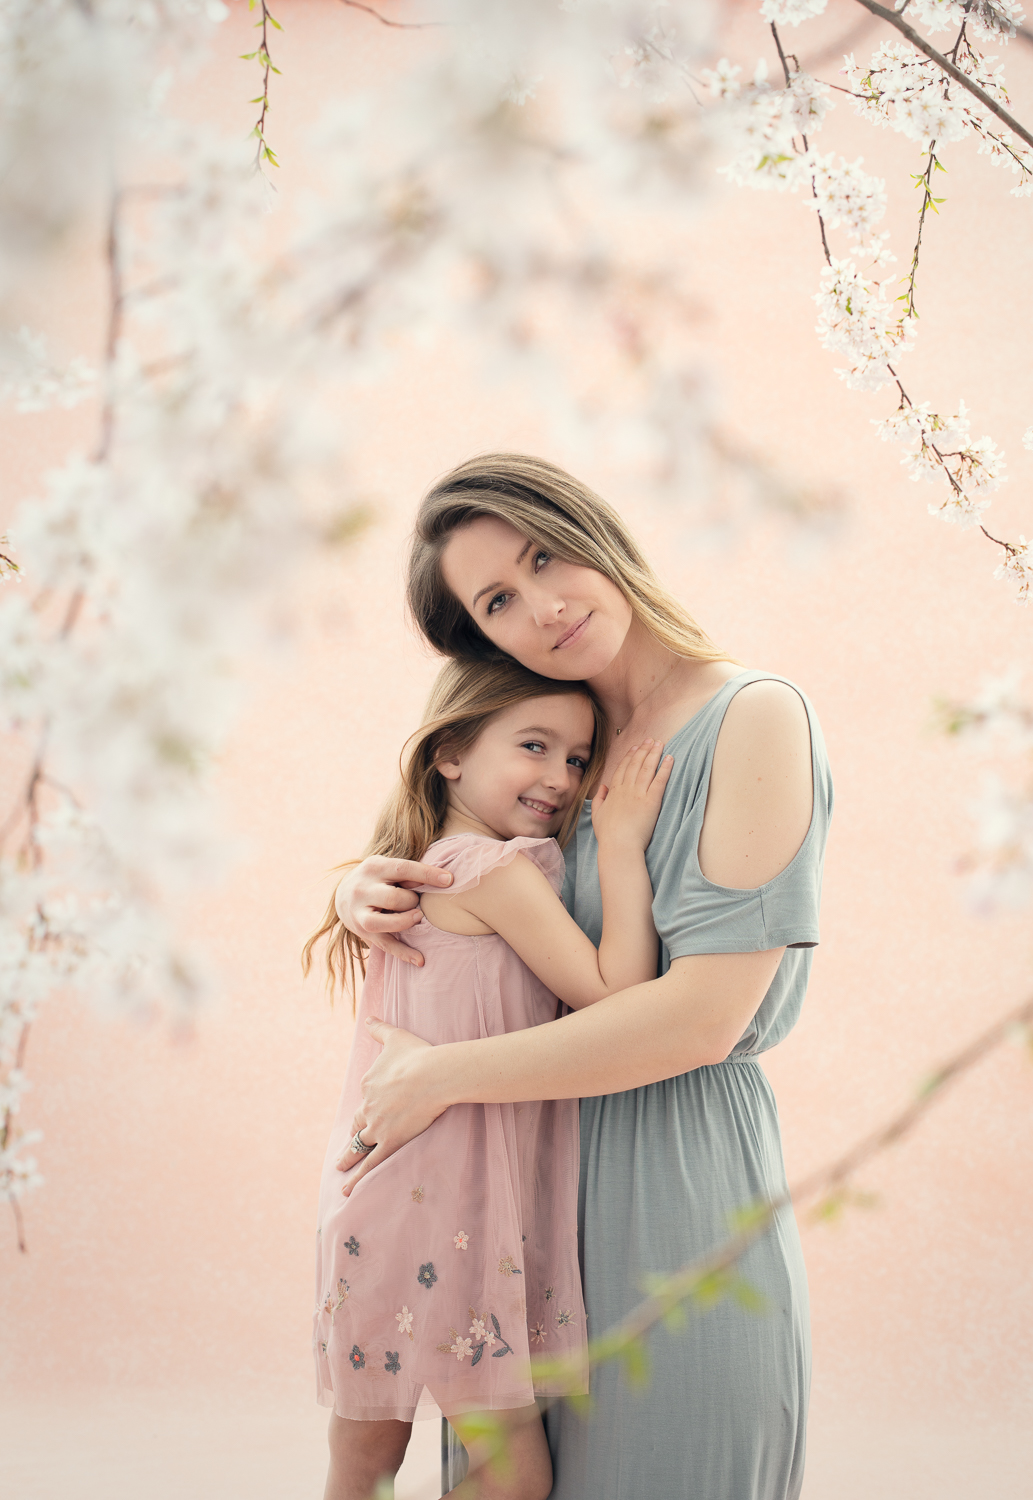 Portrait of a mother and daughter embracing | pink | cherry blossoms